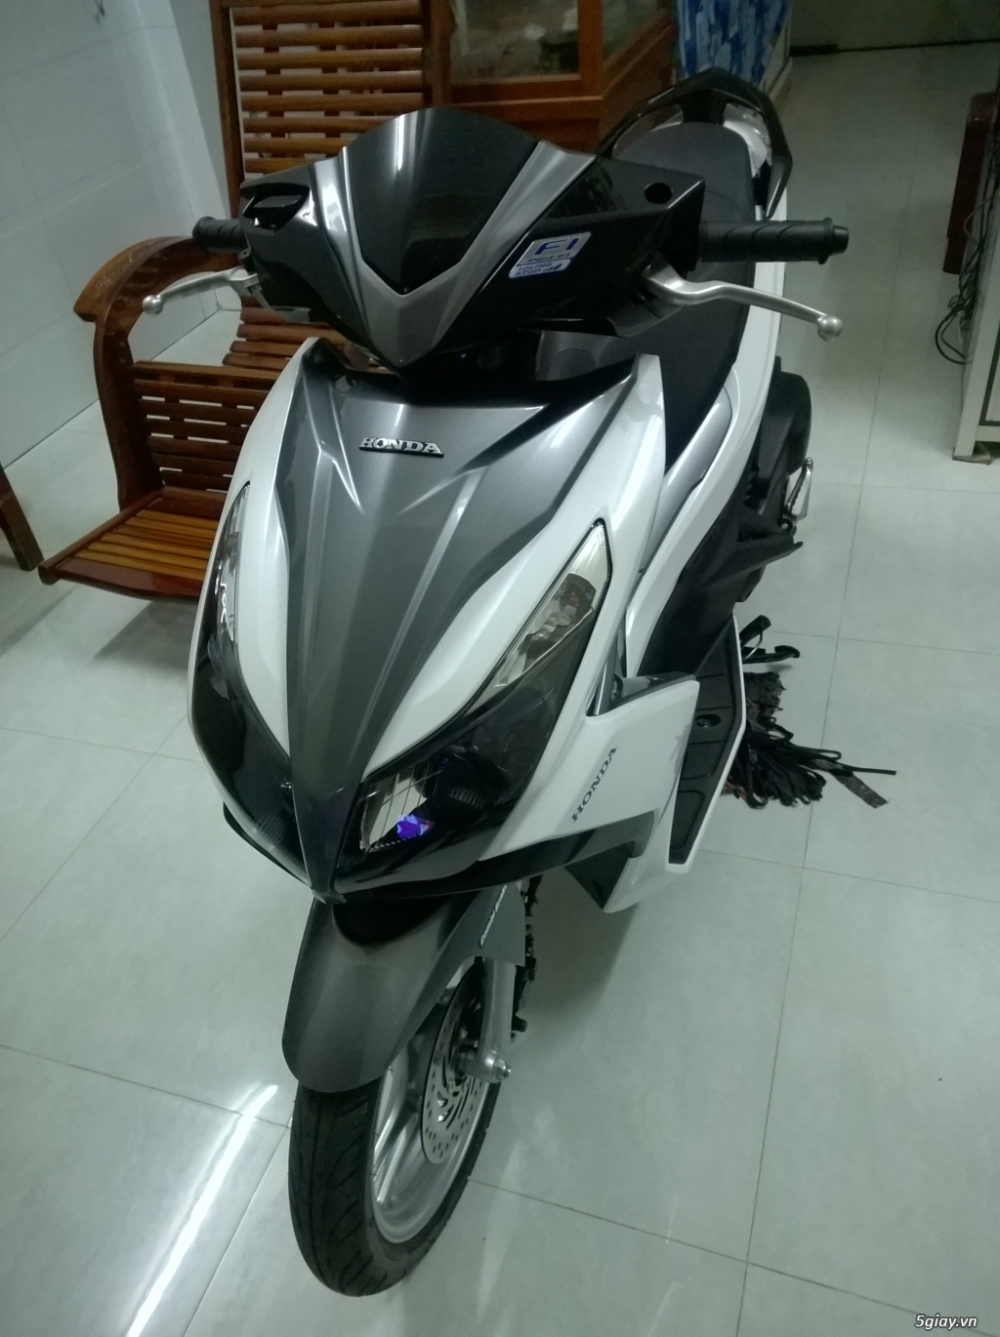 Air Blade FI 125cc moi 99 bien so VIP ngu quy 33333 - 2